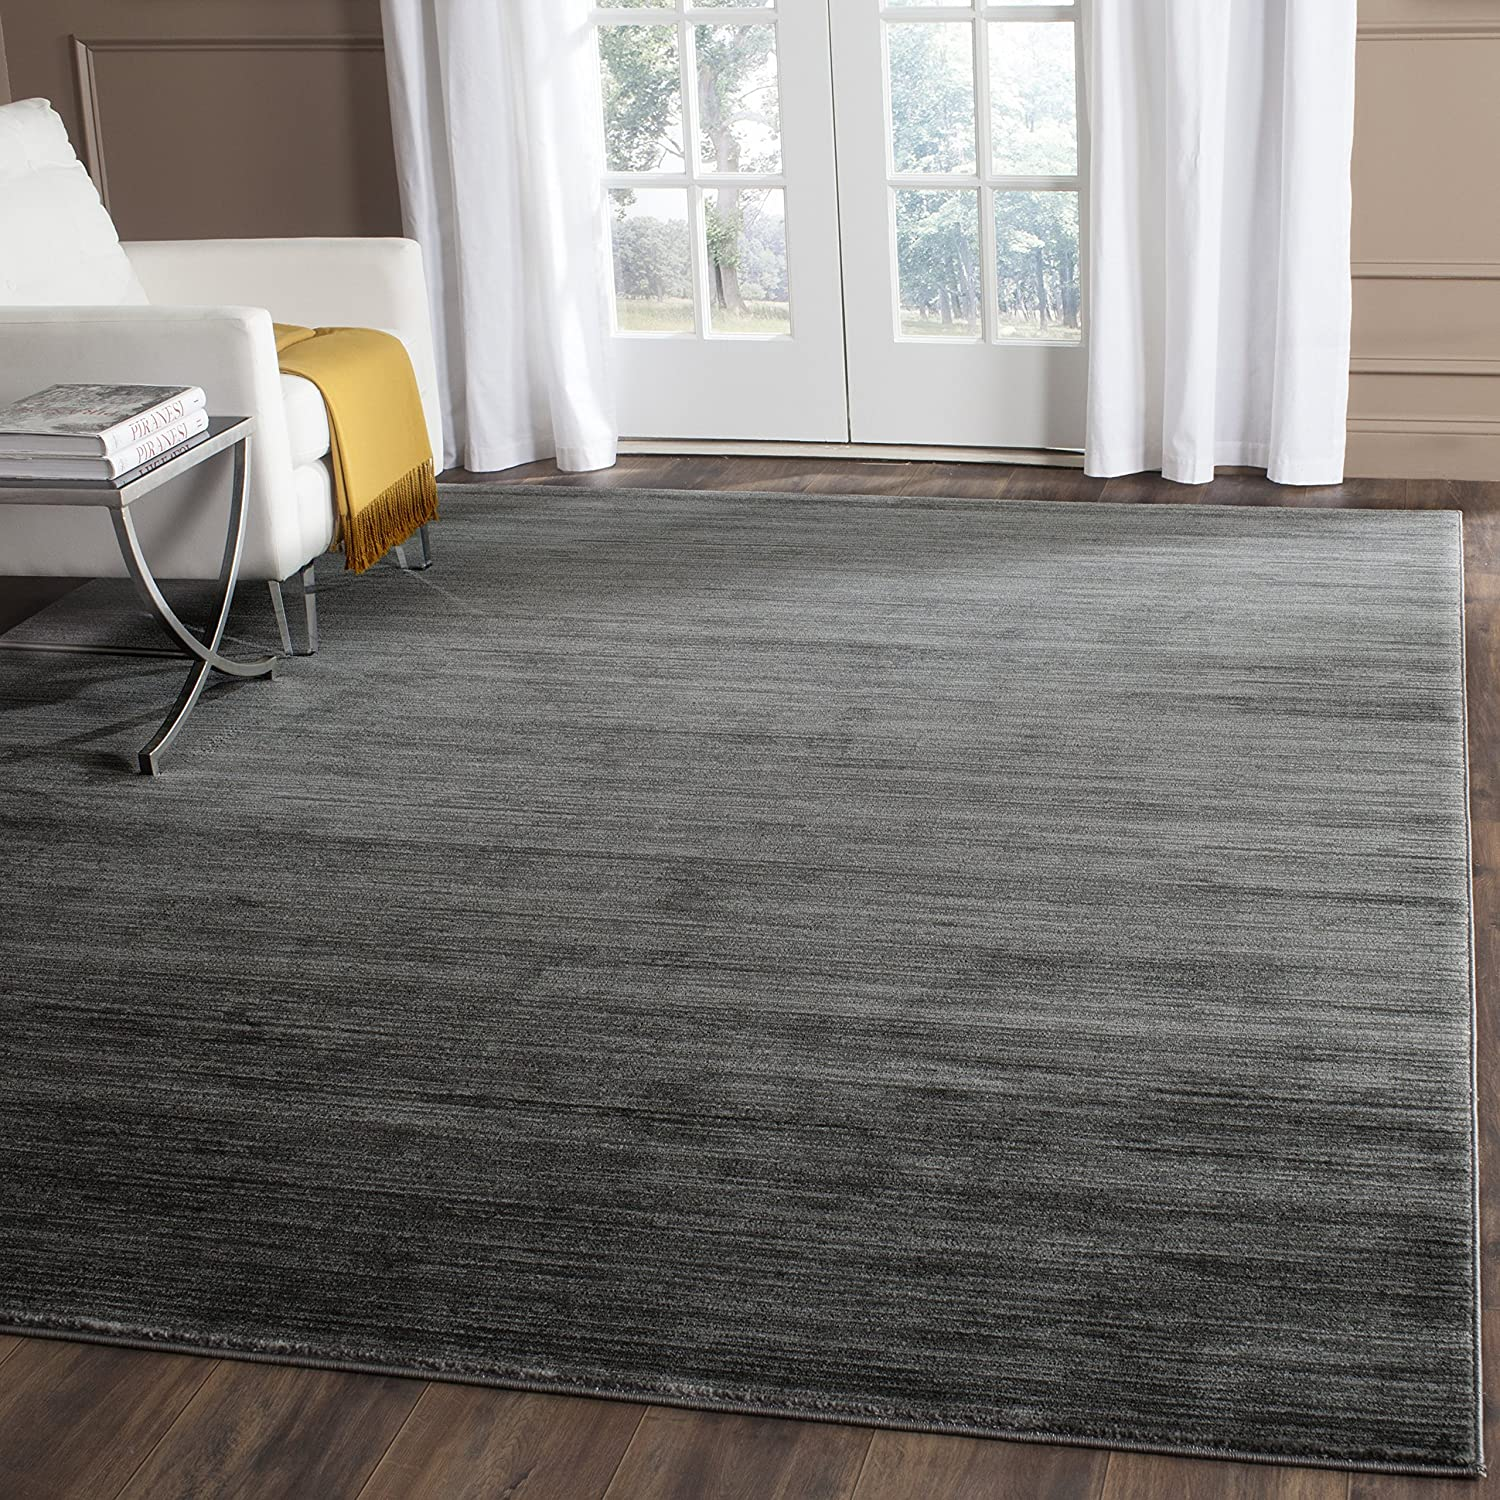 amazoncom safavieh vision collection vsn606d grey area rug 4 feet by 6 feet 4u0027 x 6u0027 kitchen u0026 dining